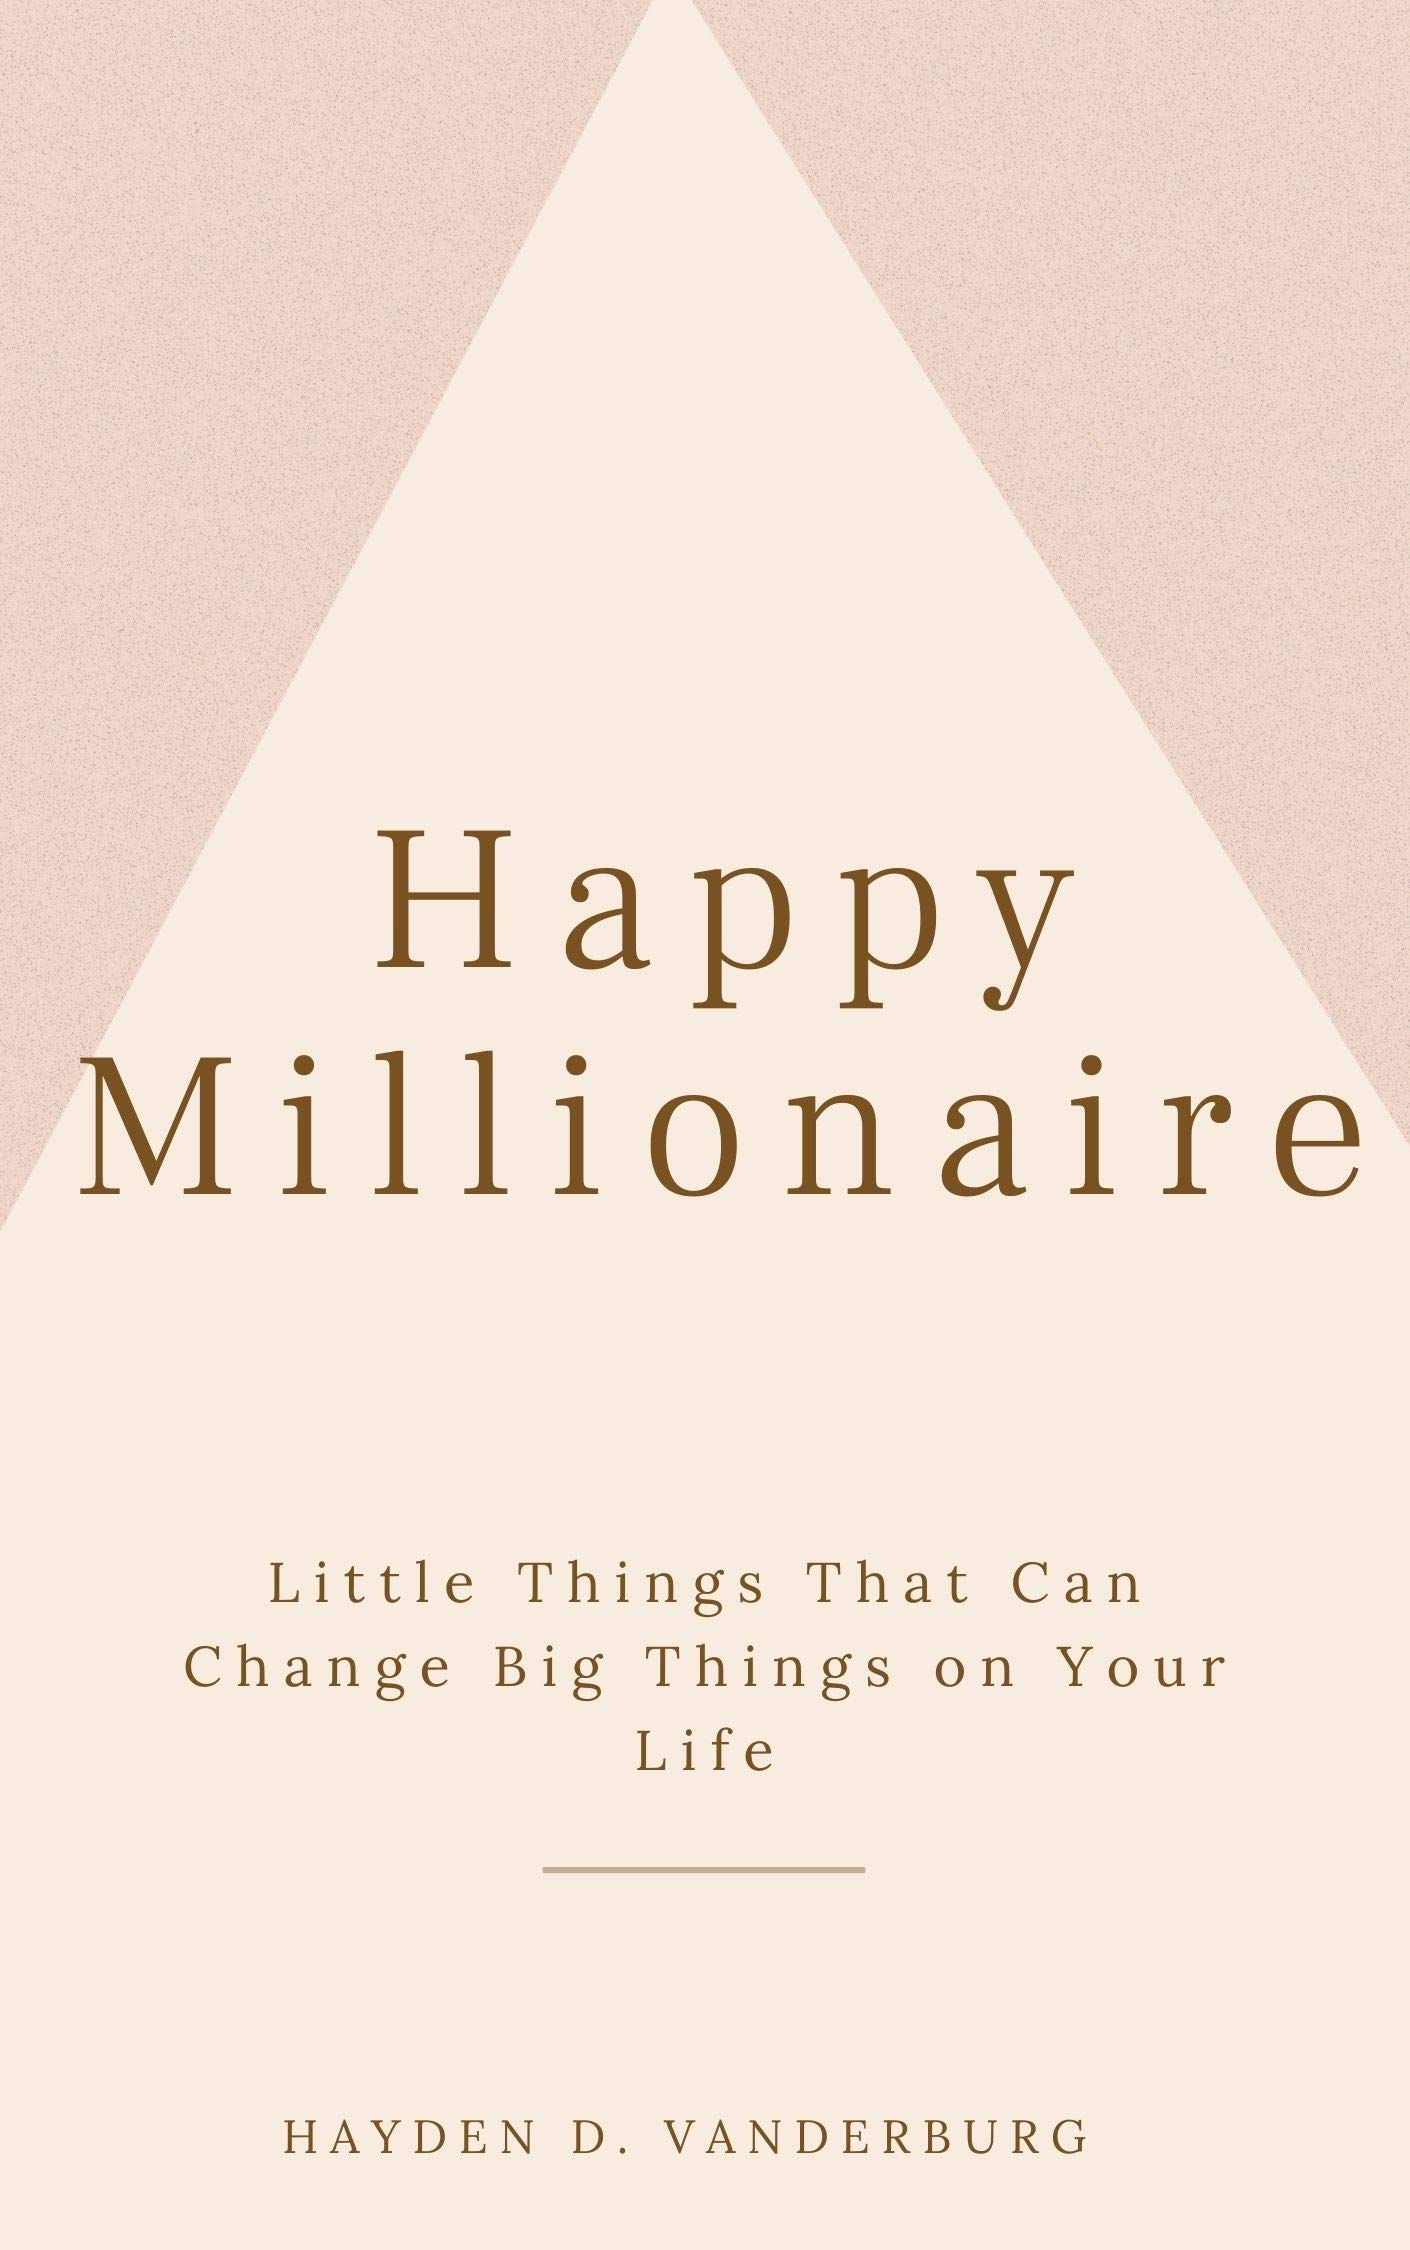 Happy Millionaire: Little Things That Can Change Big Things on Your Life